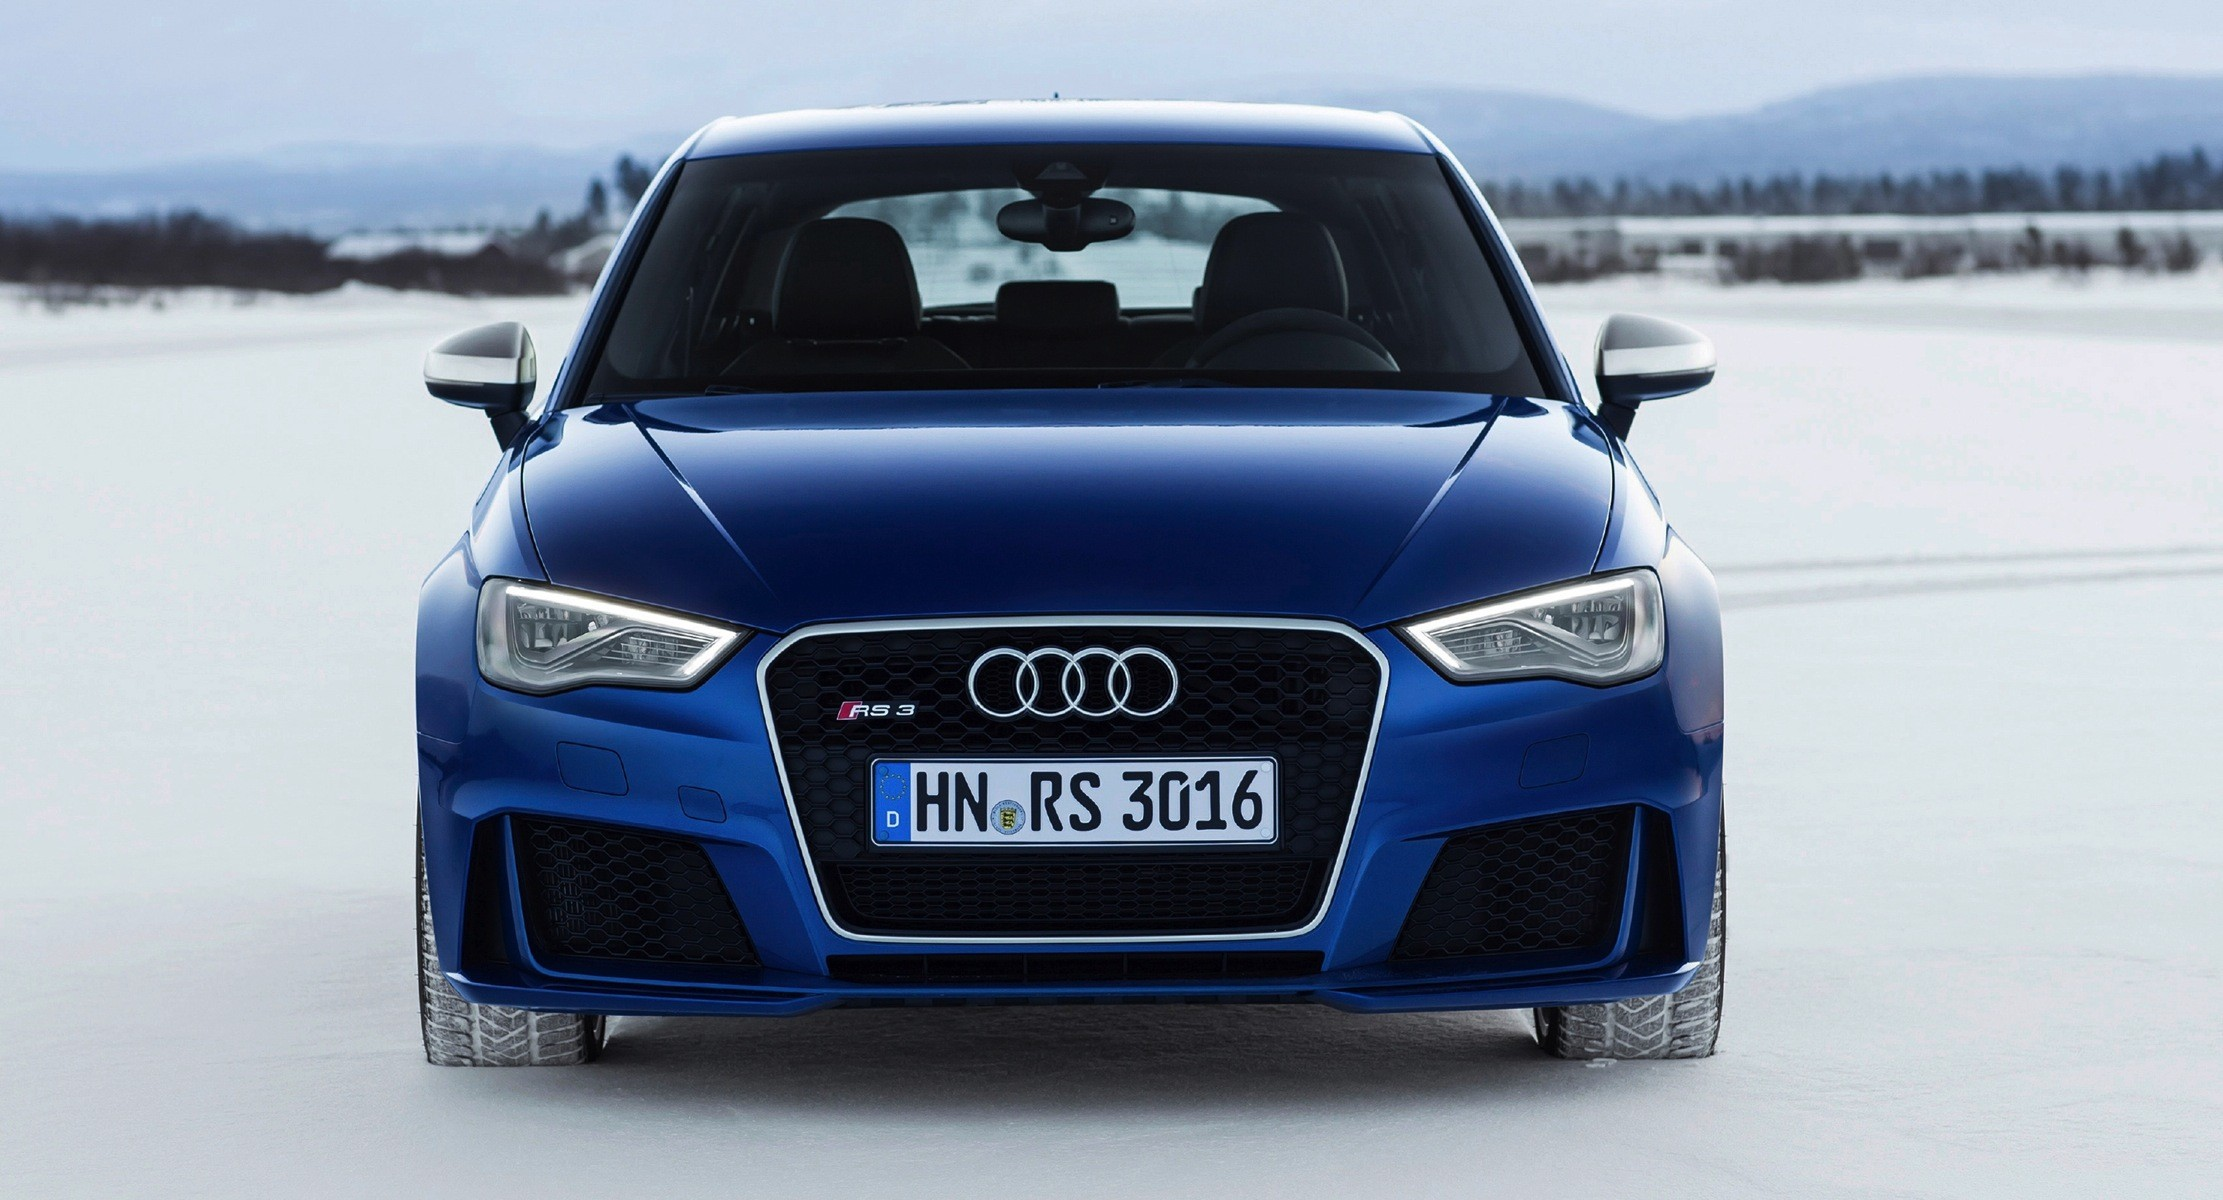 2015 Audi Rs3 New Photos Show Sepang Blue Color